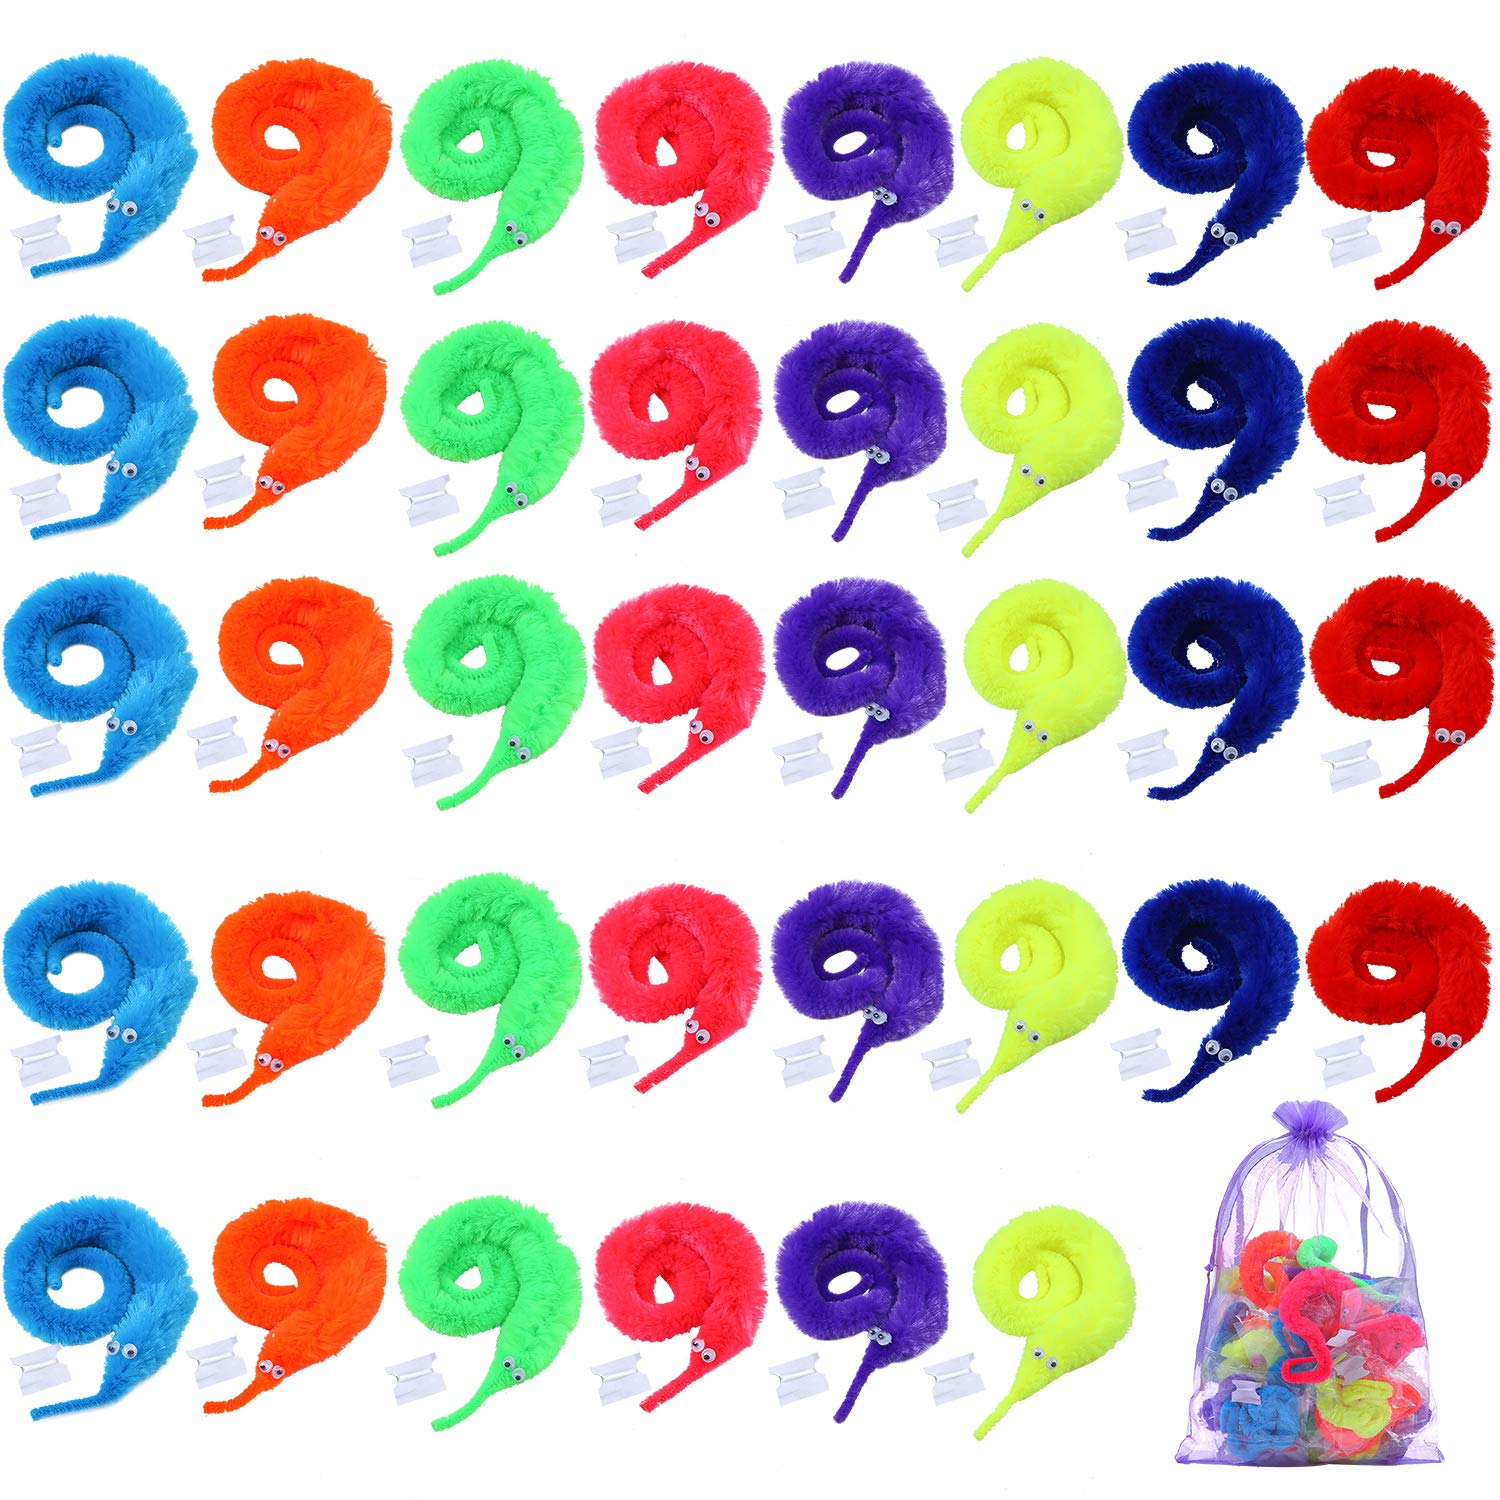 Cooraby 40 Pieces Magic Worm Toys Wiggly Twisty Fuzzy Worm Carnival Party Favors with a Organza Bag, 8 Colors by Cooraby